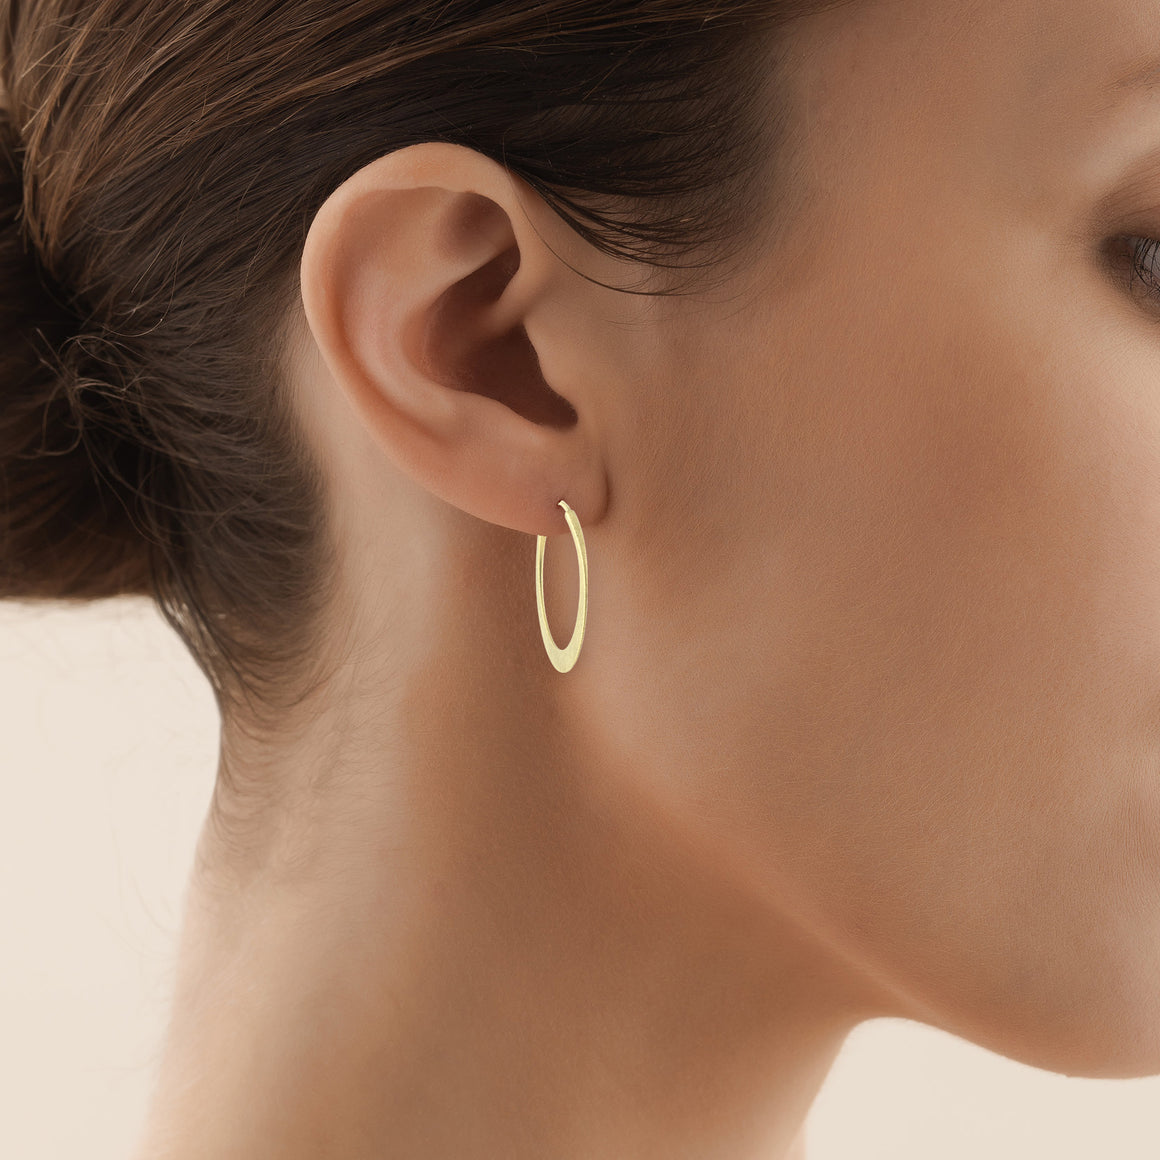 Endless Hoop Earrings in Yellow Gold - 1 inch